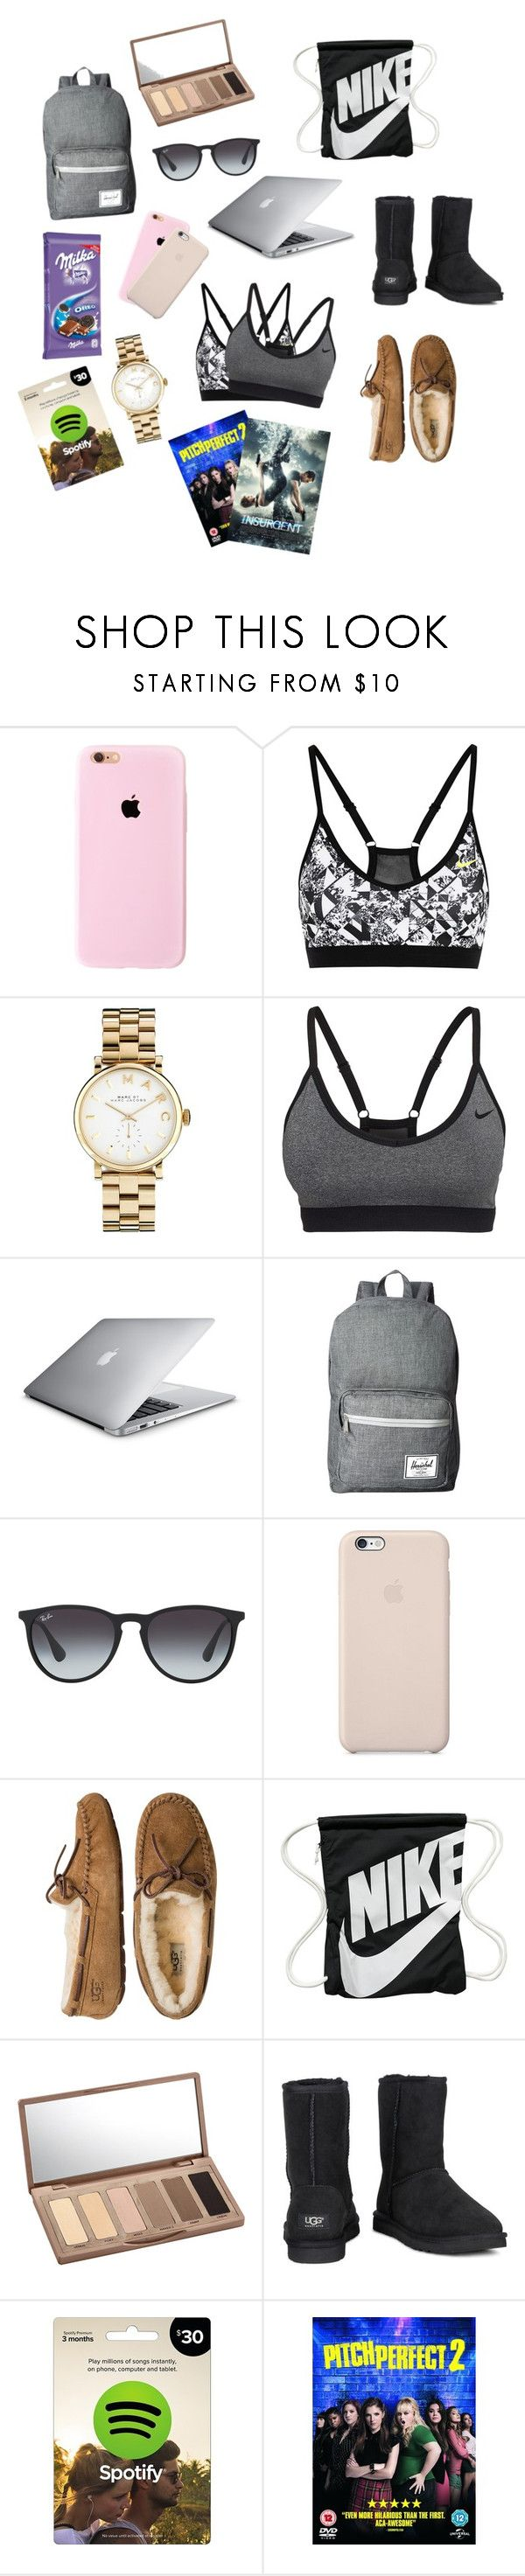 """""""Something like a Christmas wishlist🙋🏼🎅🏼🎁🎄"""" by sannannanna ❤ liked on Polyvore featuring NIKE, Marc by Marc Jacobs, Herschel Supply Co., Ray-Ban, Black Apple, UGG Australia and Urban Decay"""